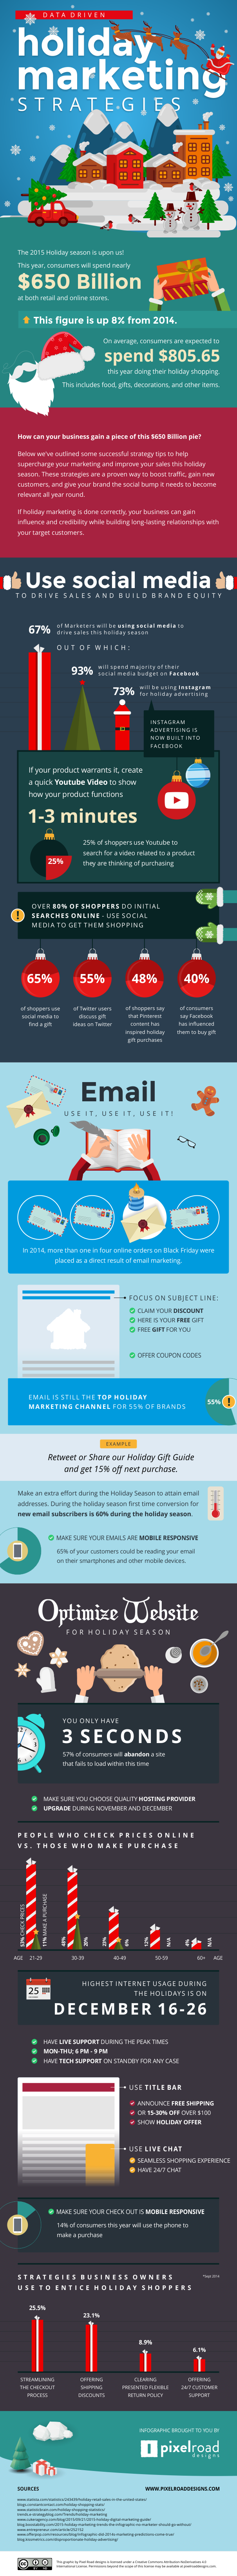 Data Driven Holiday Marketing Strategies (Infographic) by Brent Csutoras via Pixel Road Designs.